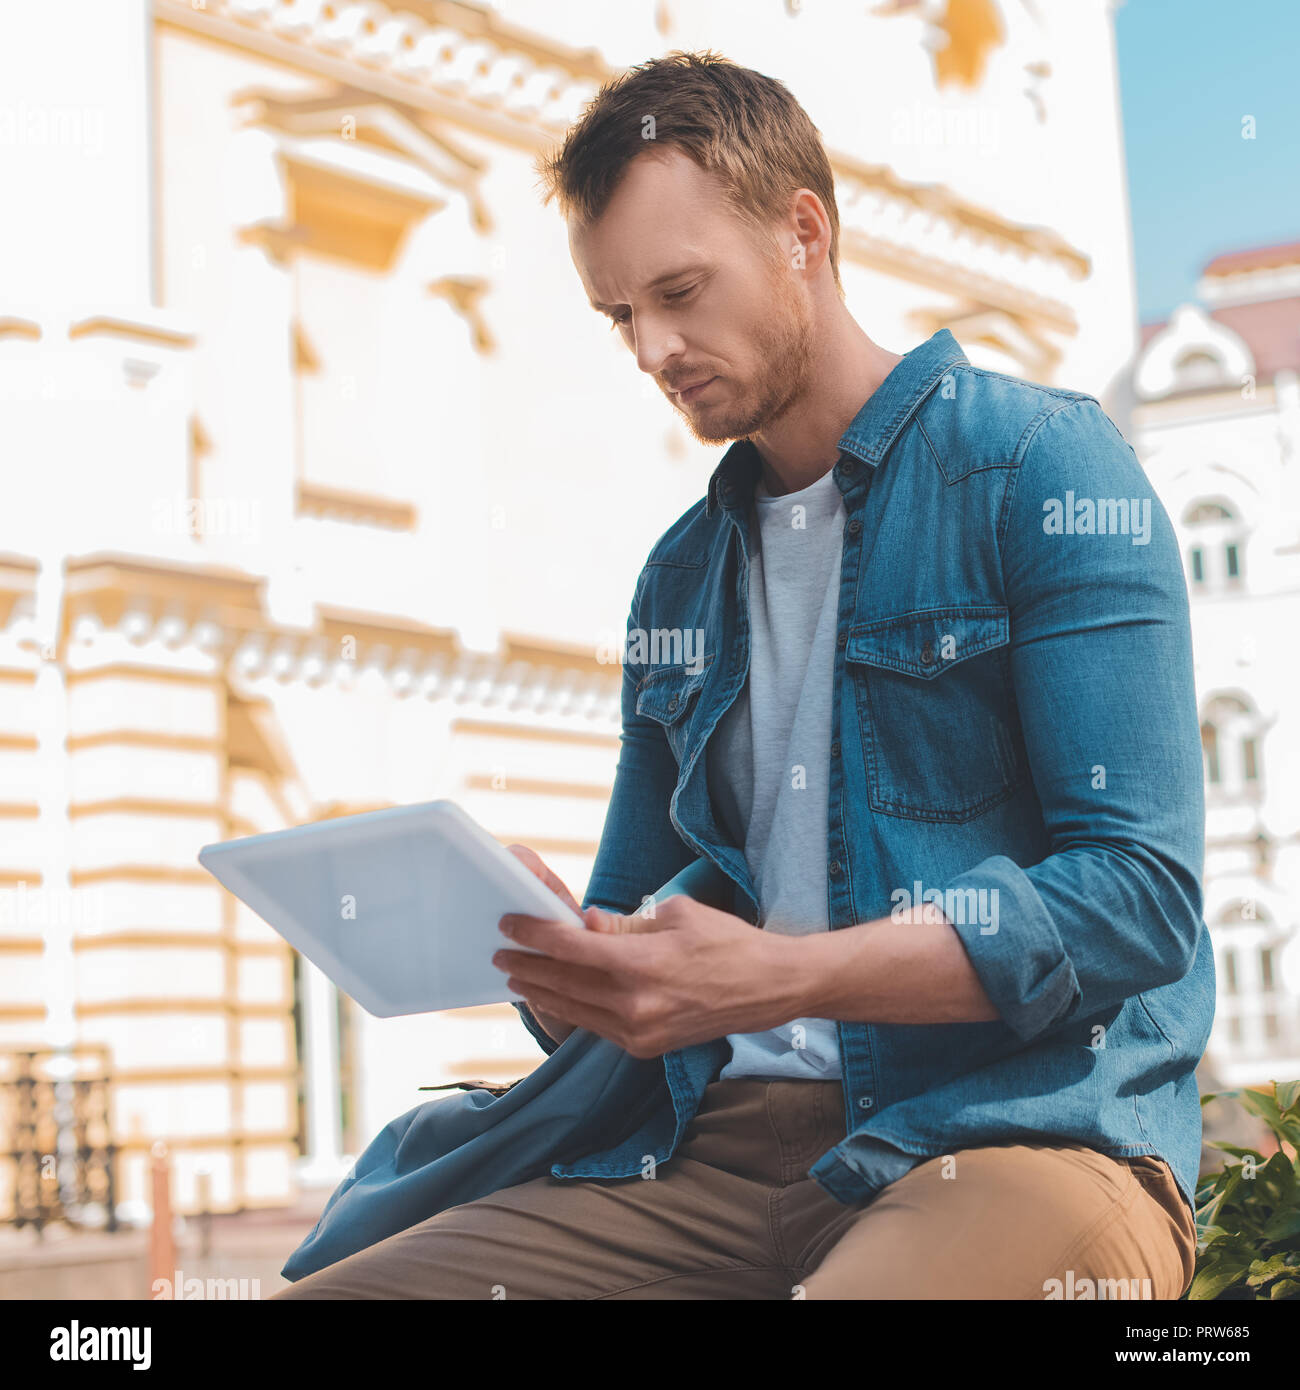 handsome young man in denim shirt using tablet on street - Stock Image